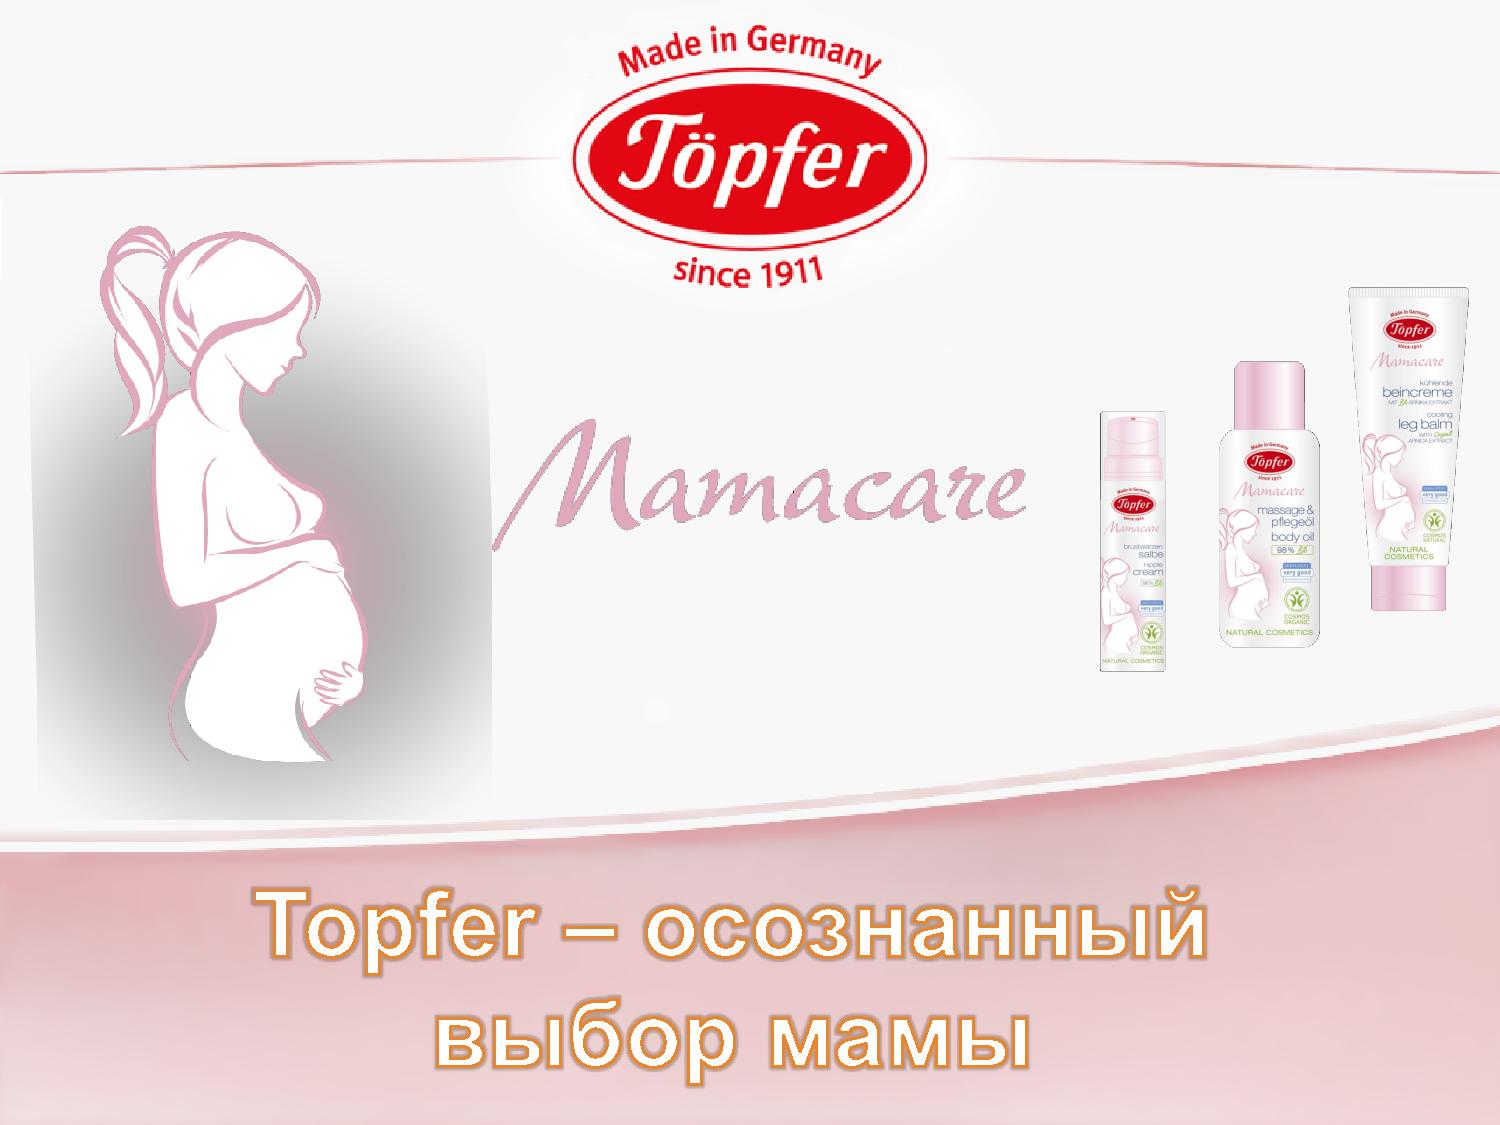 topfer-mamacare-2014-page-001.jpg